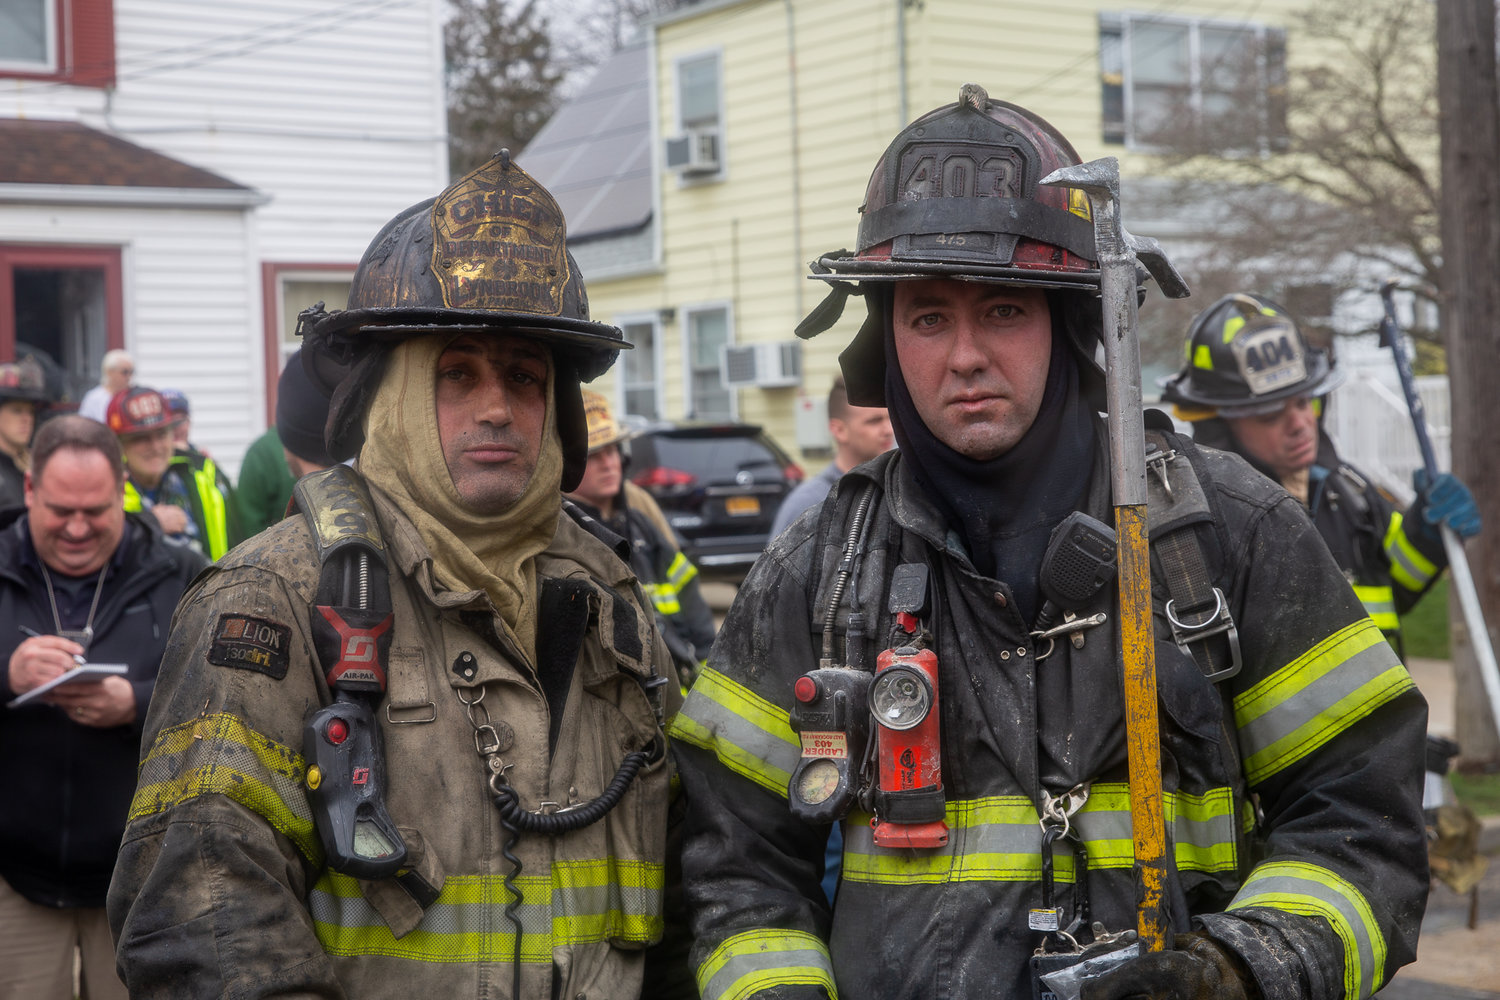 Lynbrook Chief Nick Pearsall, left, and East Rockaway firefighter James Monaco responded to the rescue.